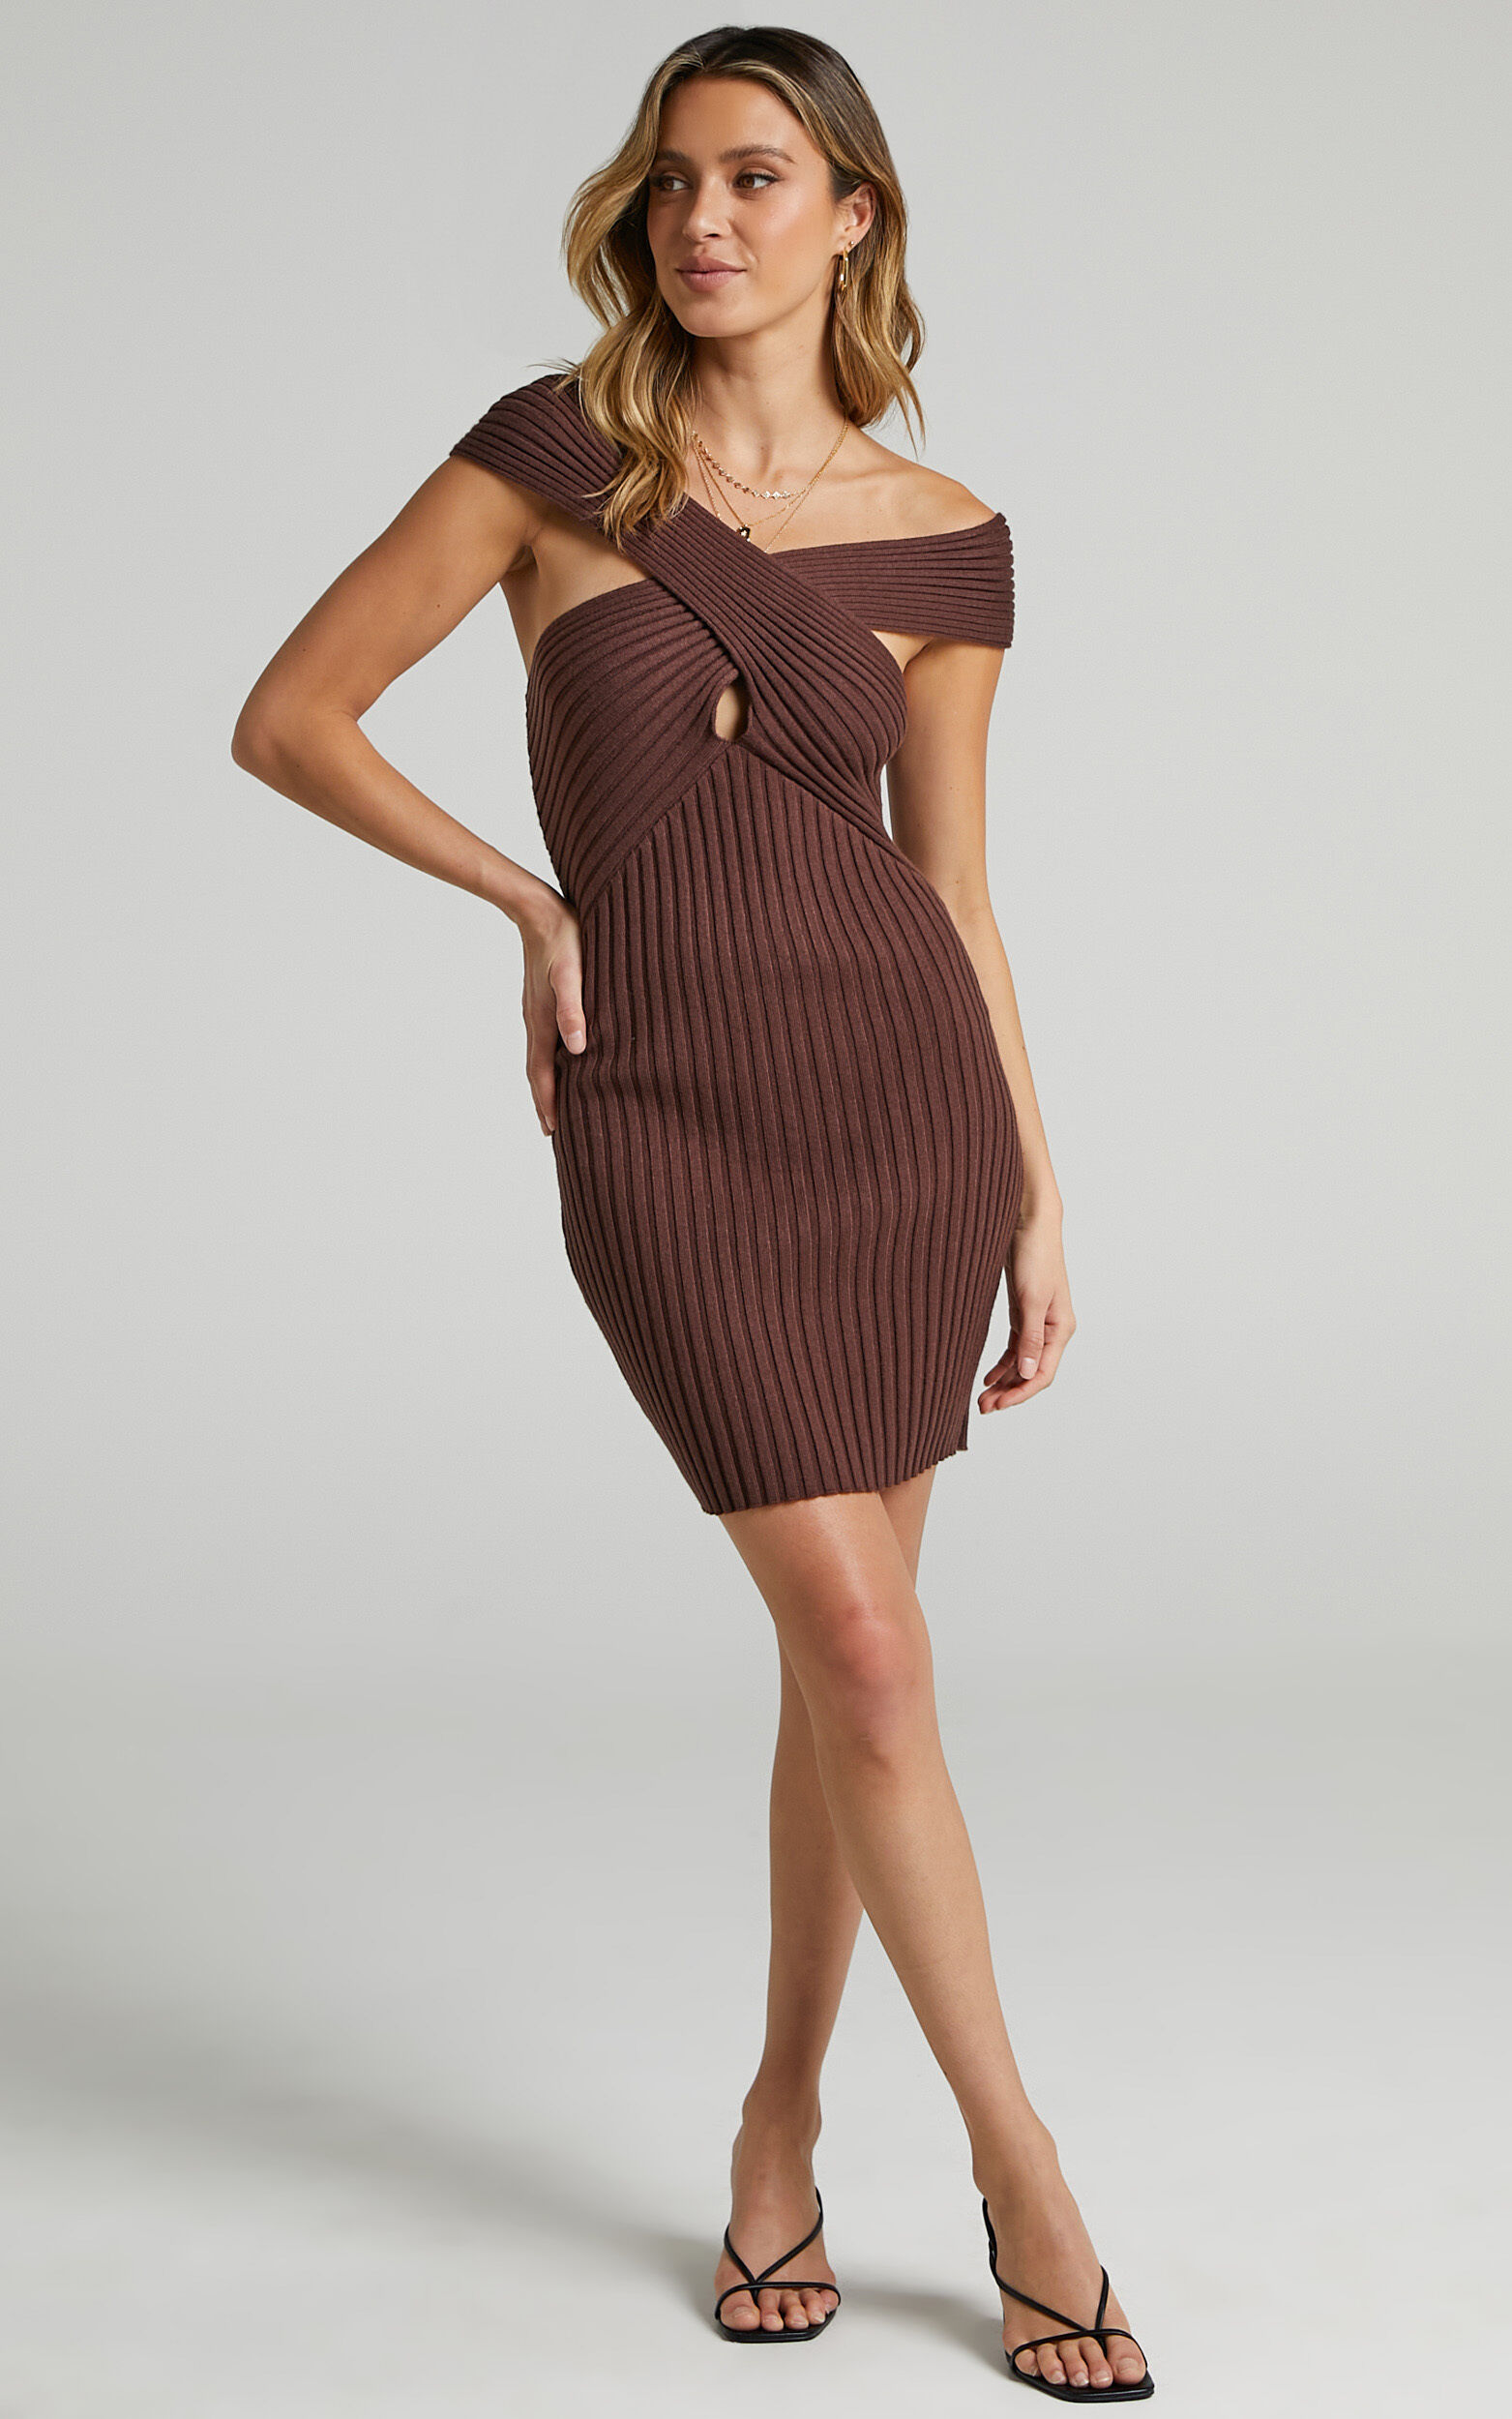 Georgia High Neck Knit Dress in Chocolate - 06, BRN1, super-hi-res image number null